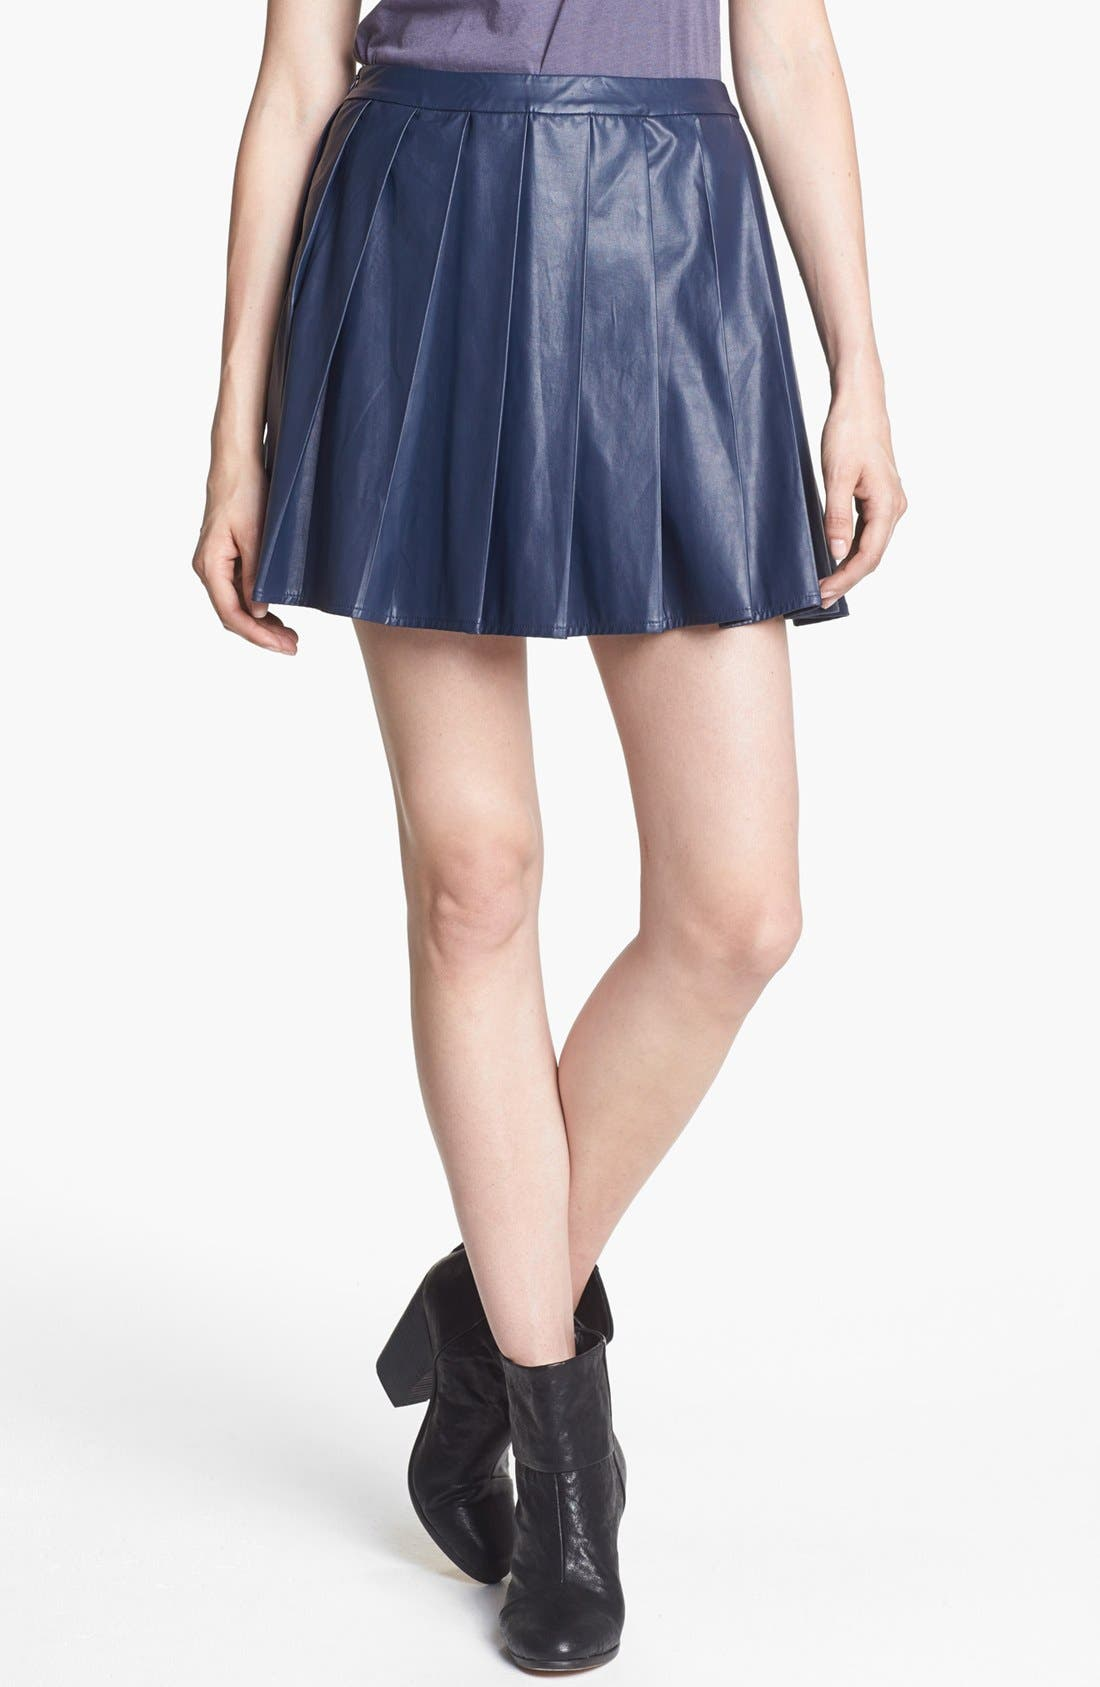 ASTR THE LABEL ASTR Pleated Faux Leather Skirt, Main, color, 422